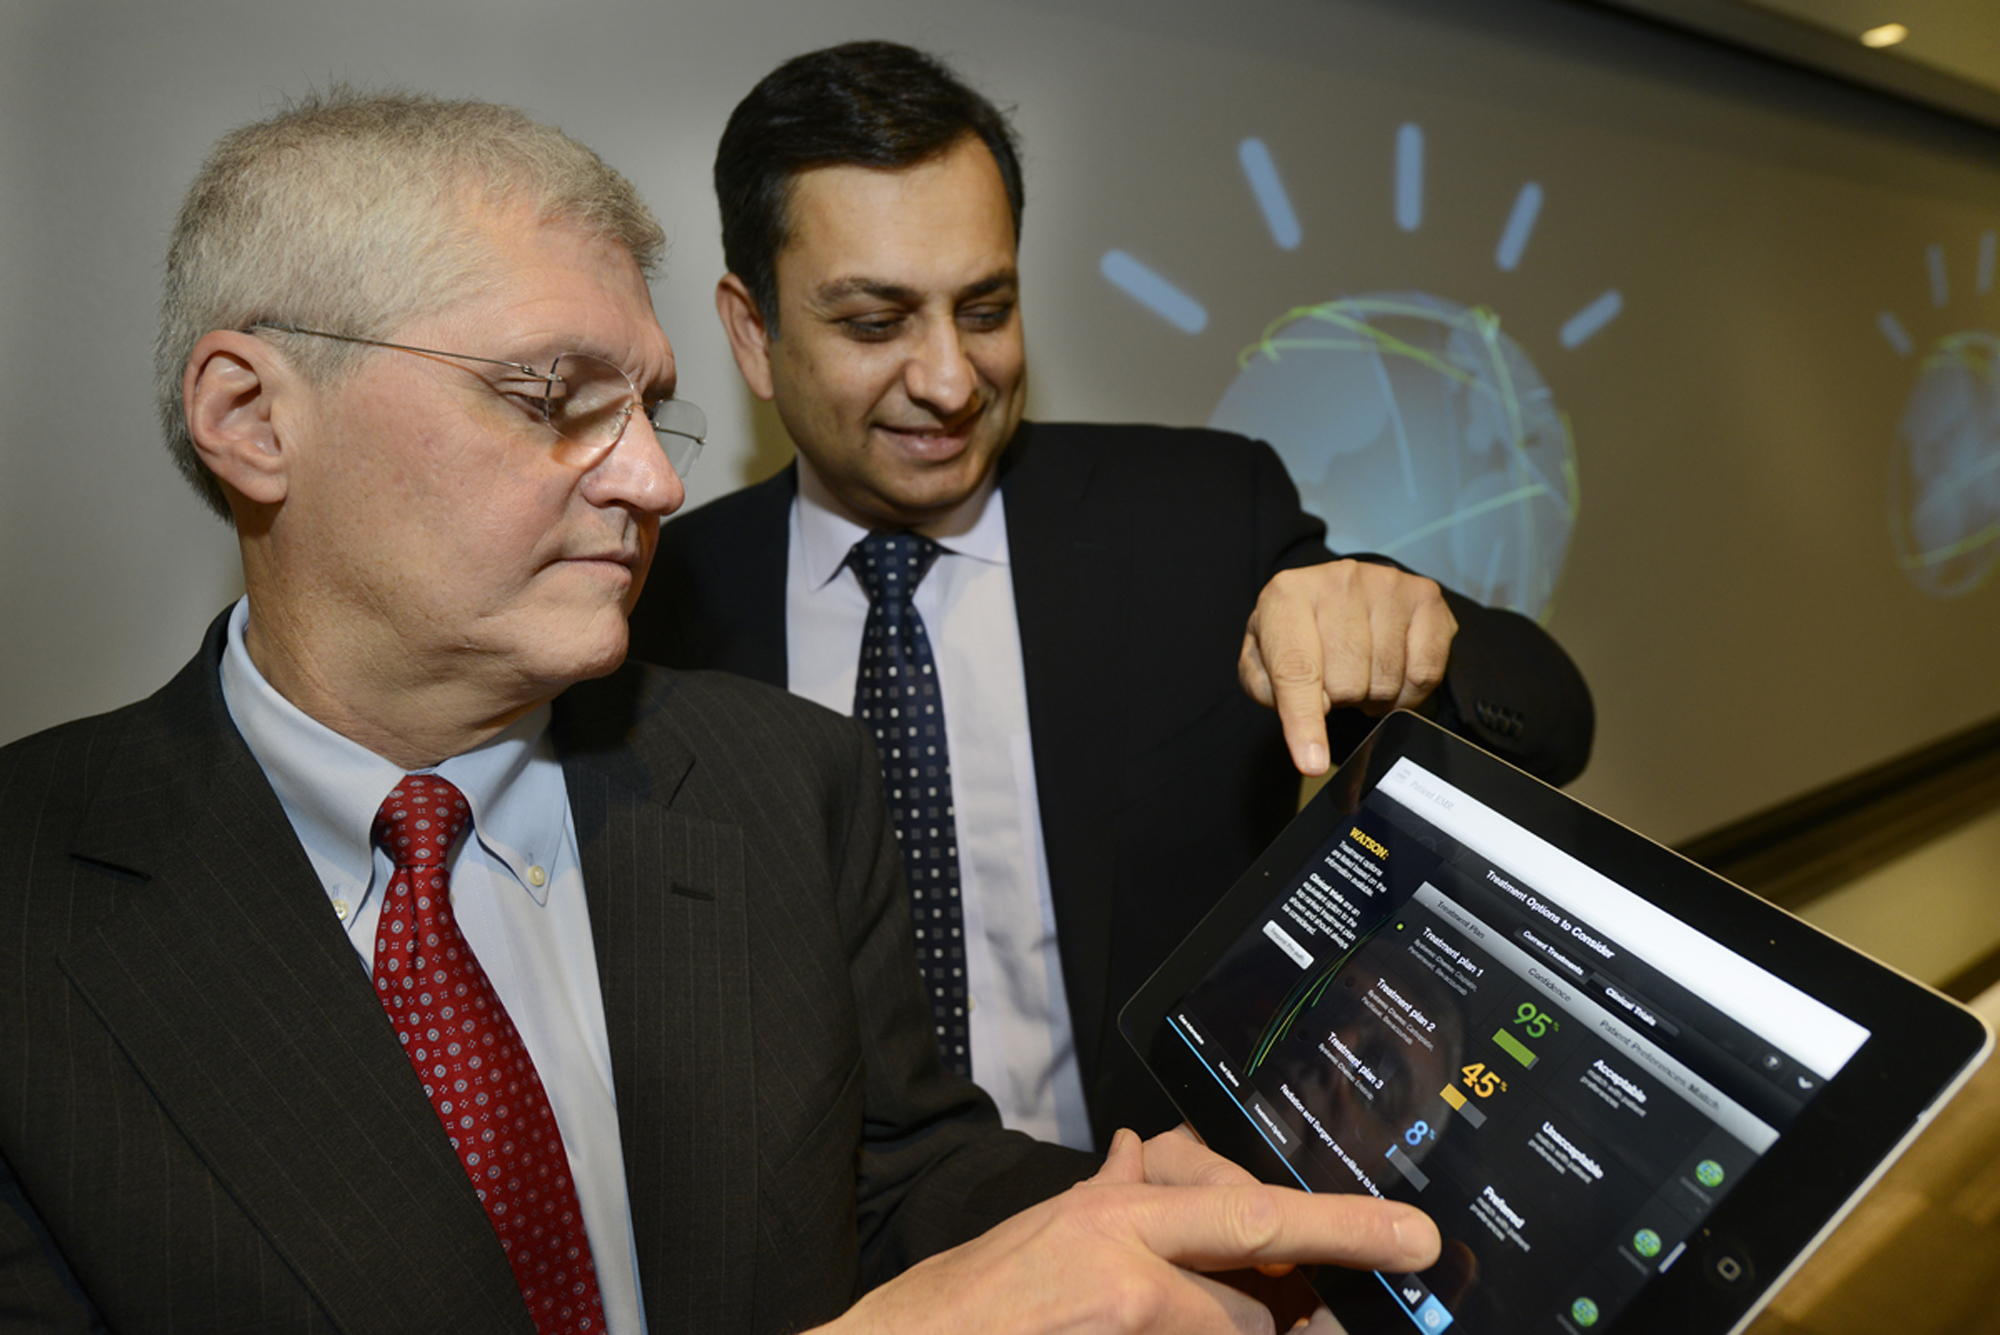 Mark Kris, MD, Chief of Thoracic Oncology, Memorial Sloan-Kettering Cancer Center, left, and Manoj Saxena, IBM General Manager, Watson Solutions work with the first Watson-based cognitive computing solution for oncology in New York City on February 11, 2013.